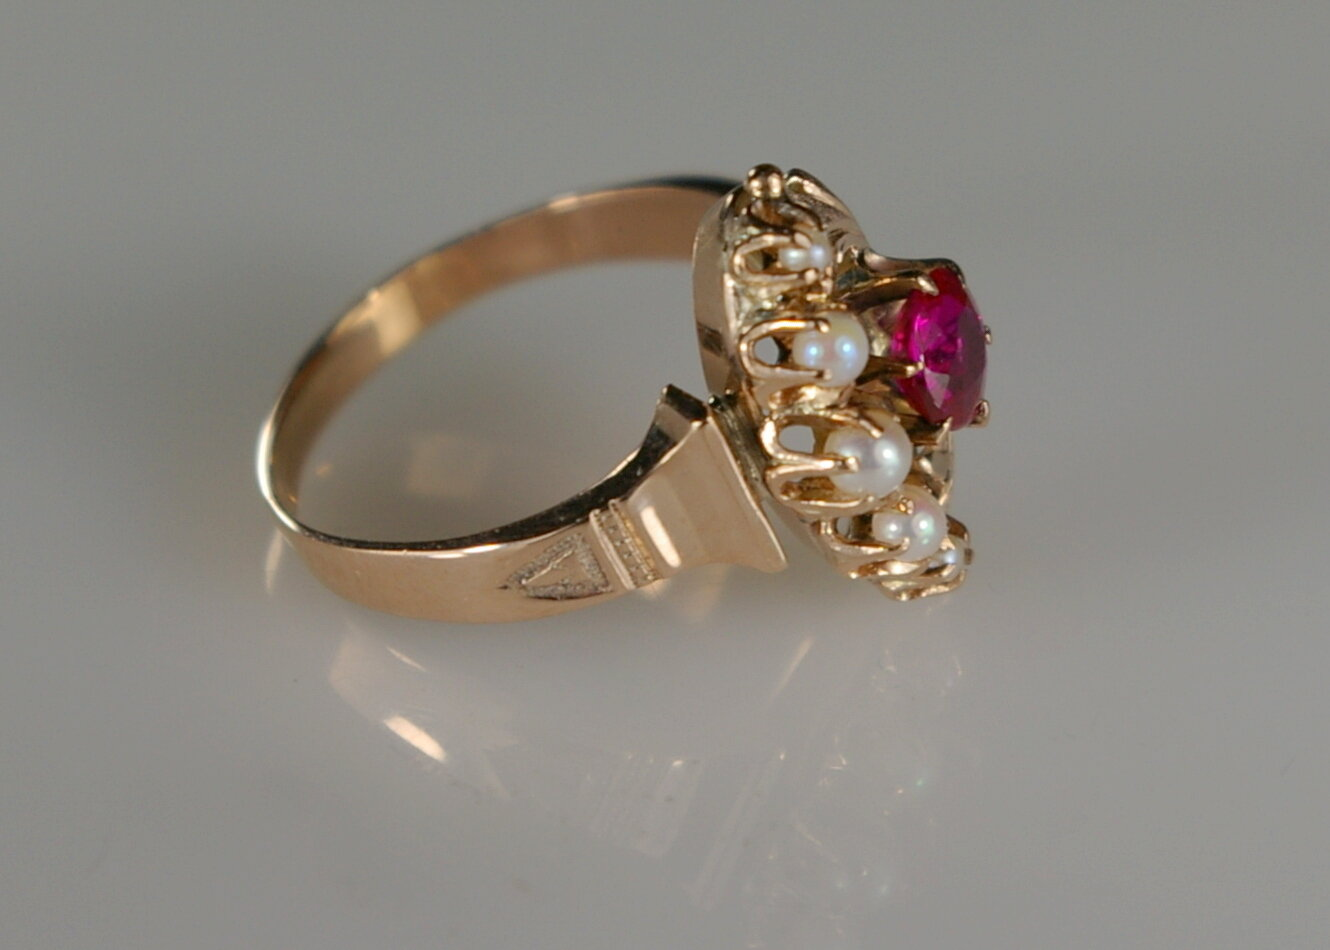 The same Fire Damaged Jewelry Restoration at Crane Jewelers Ltd. Victorian Ruby Ring after restoration.